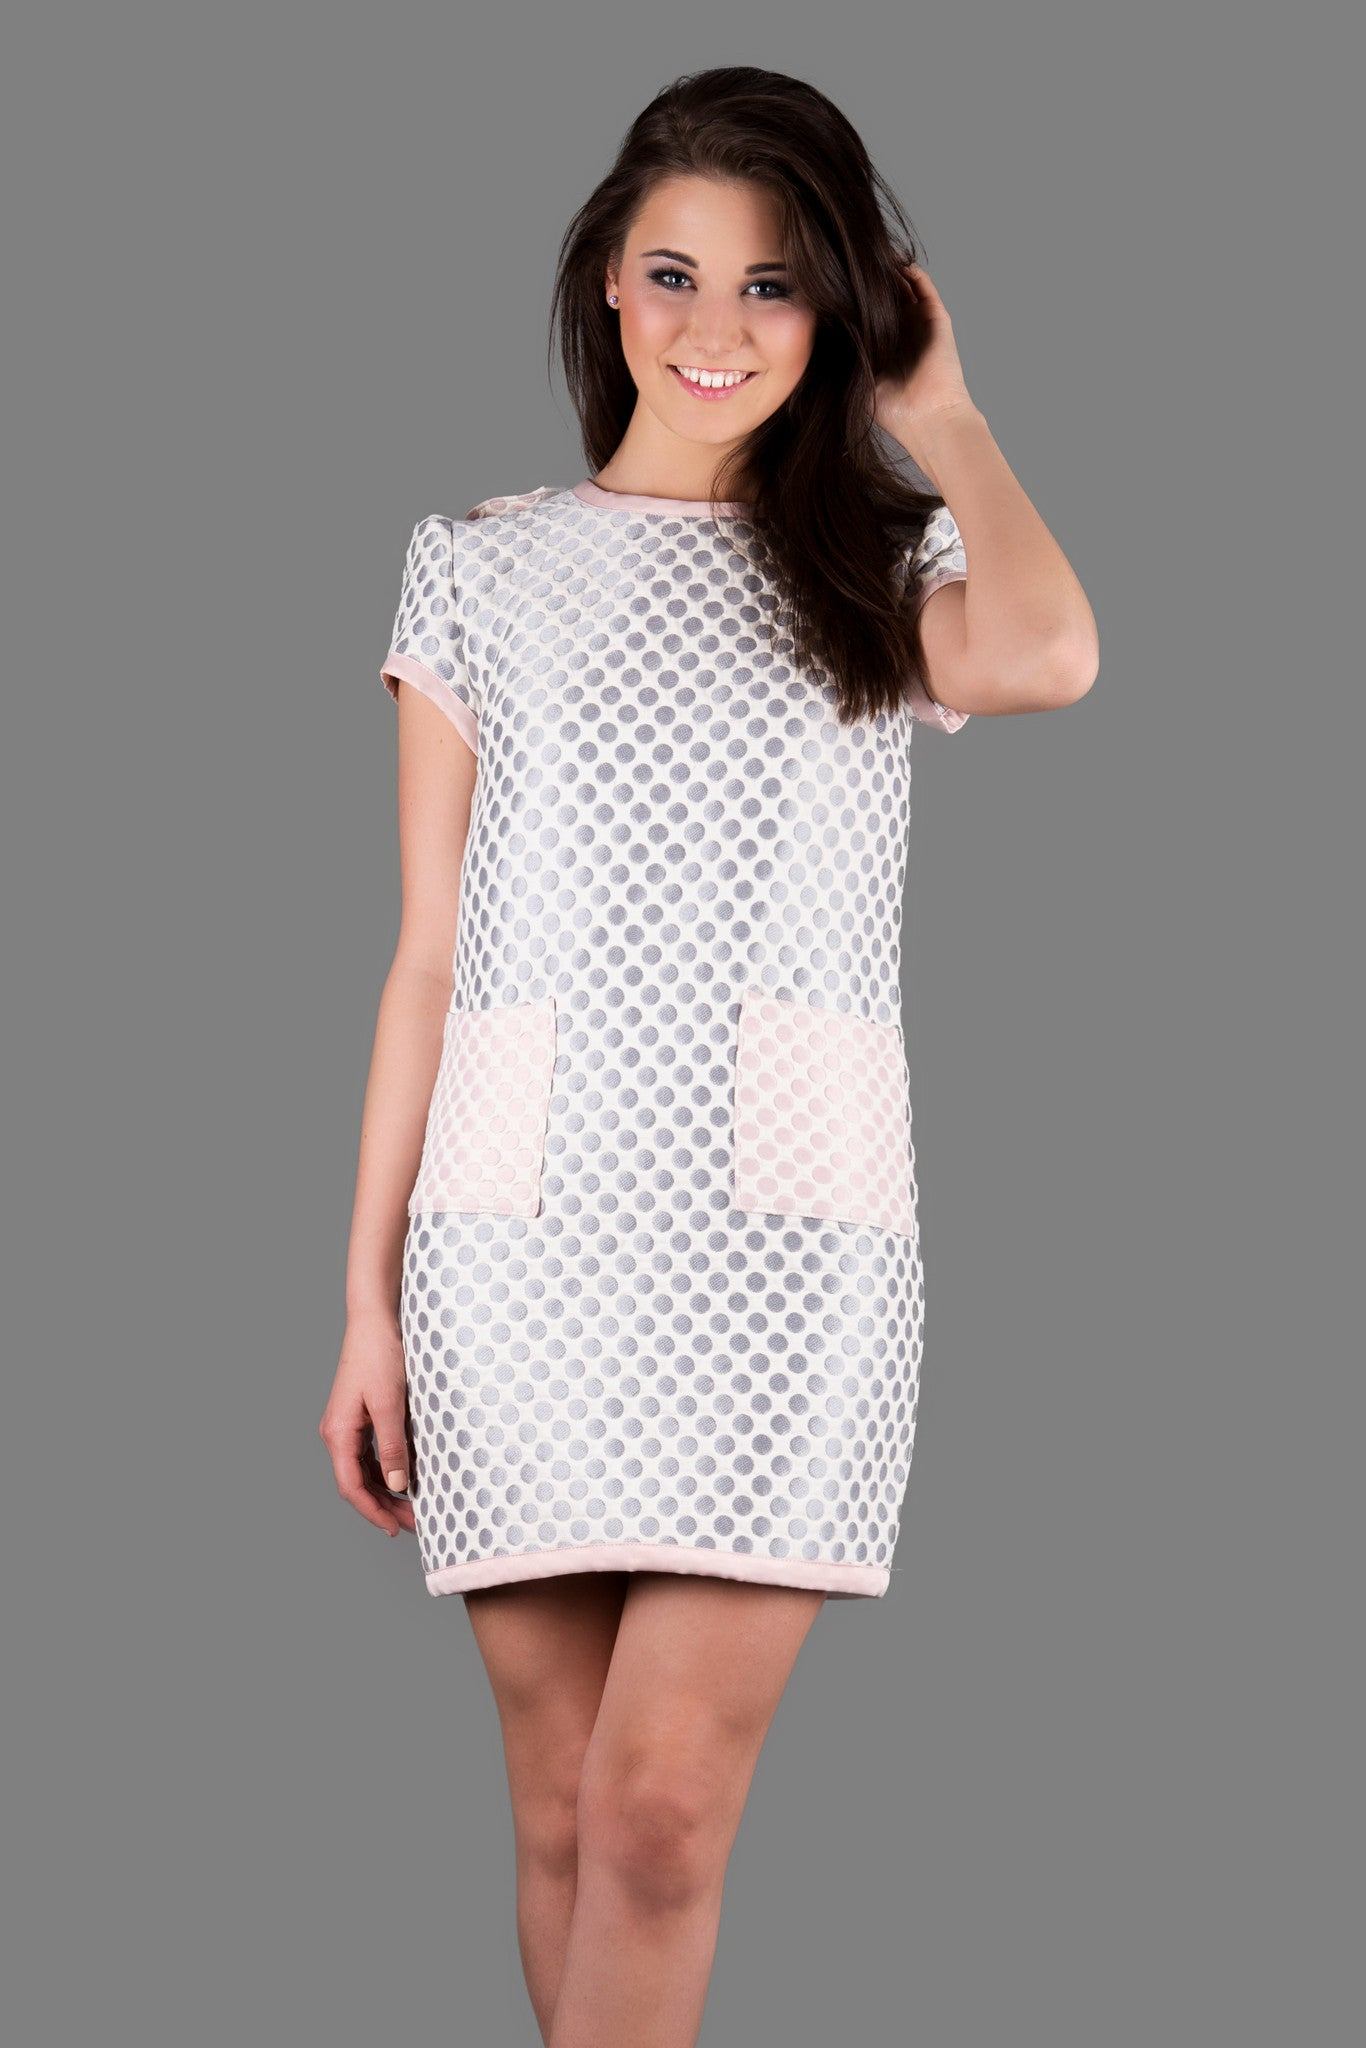 3D Polka Dot Dress